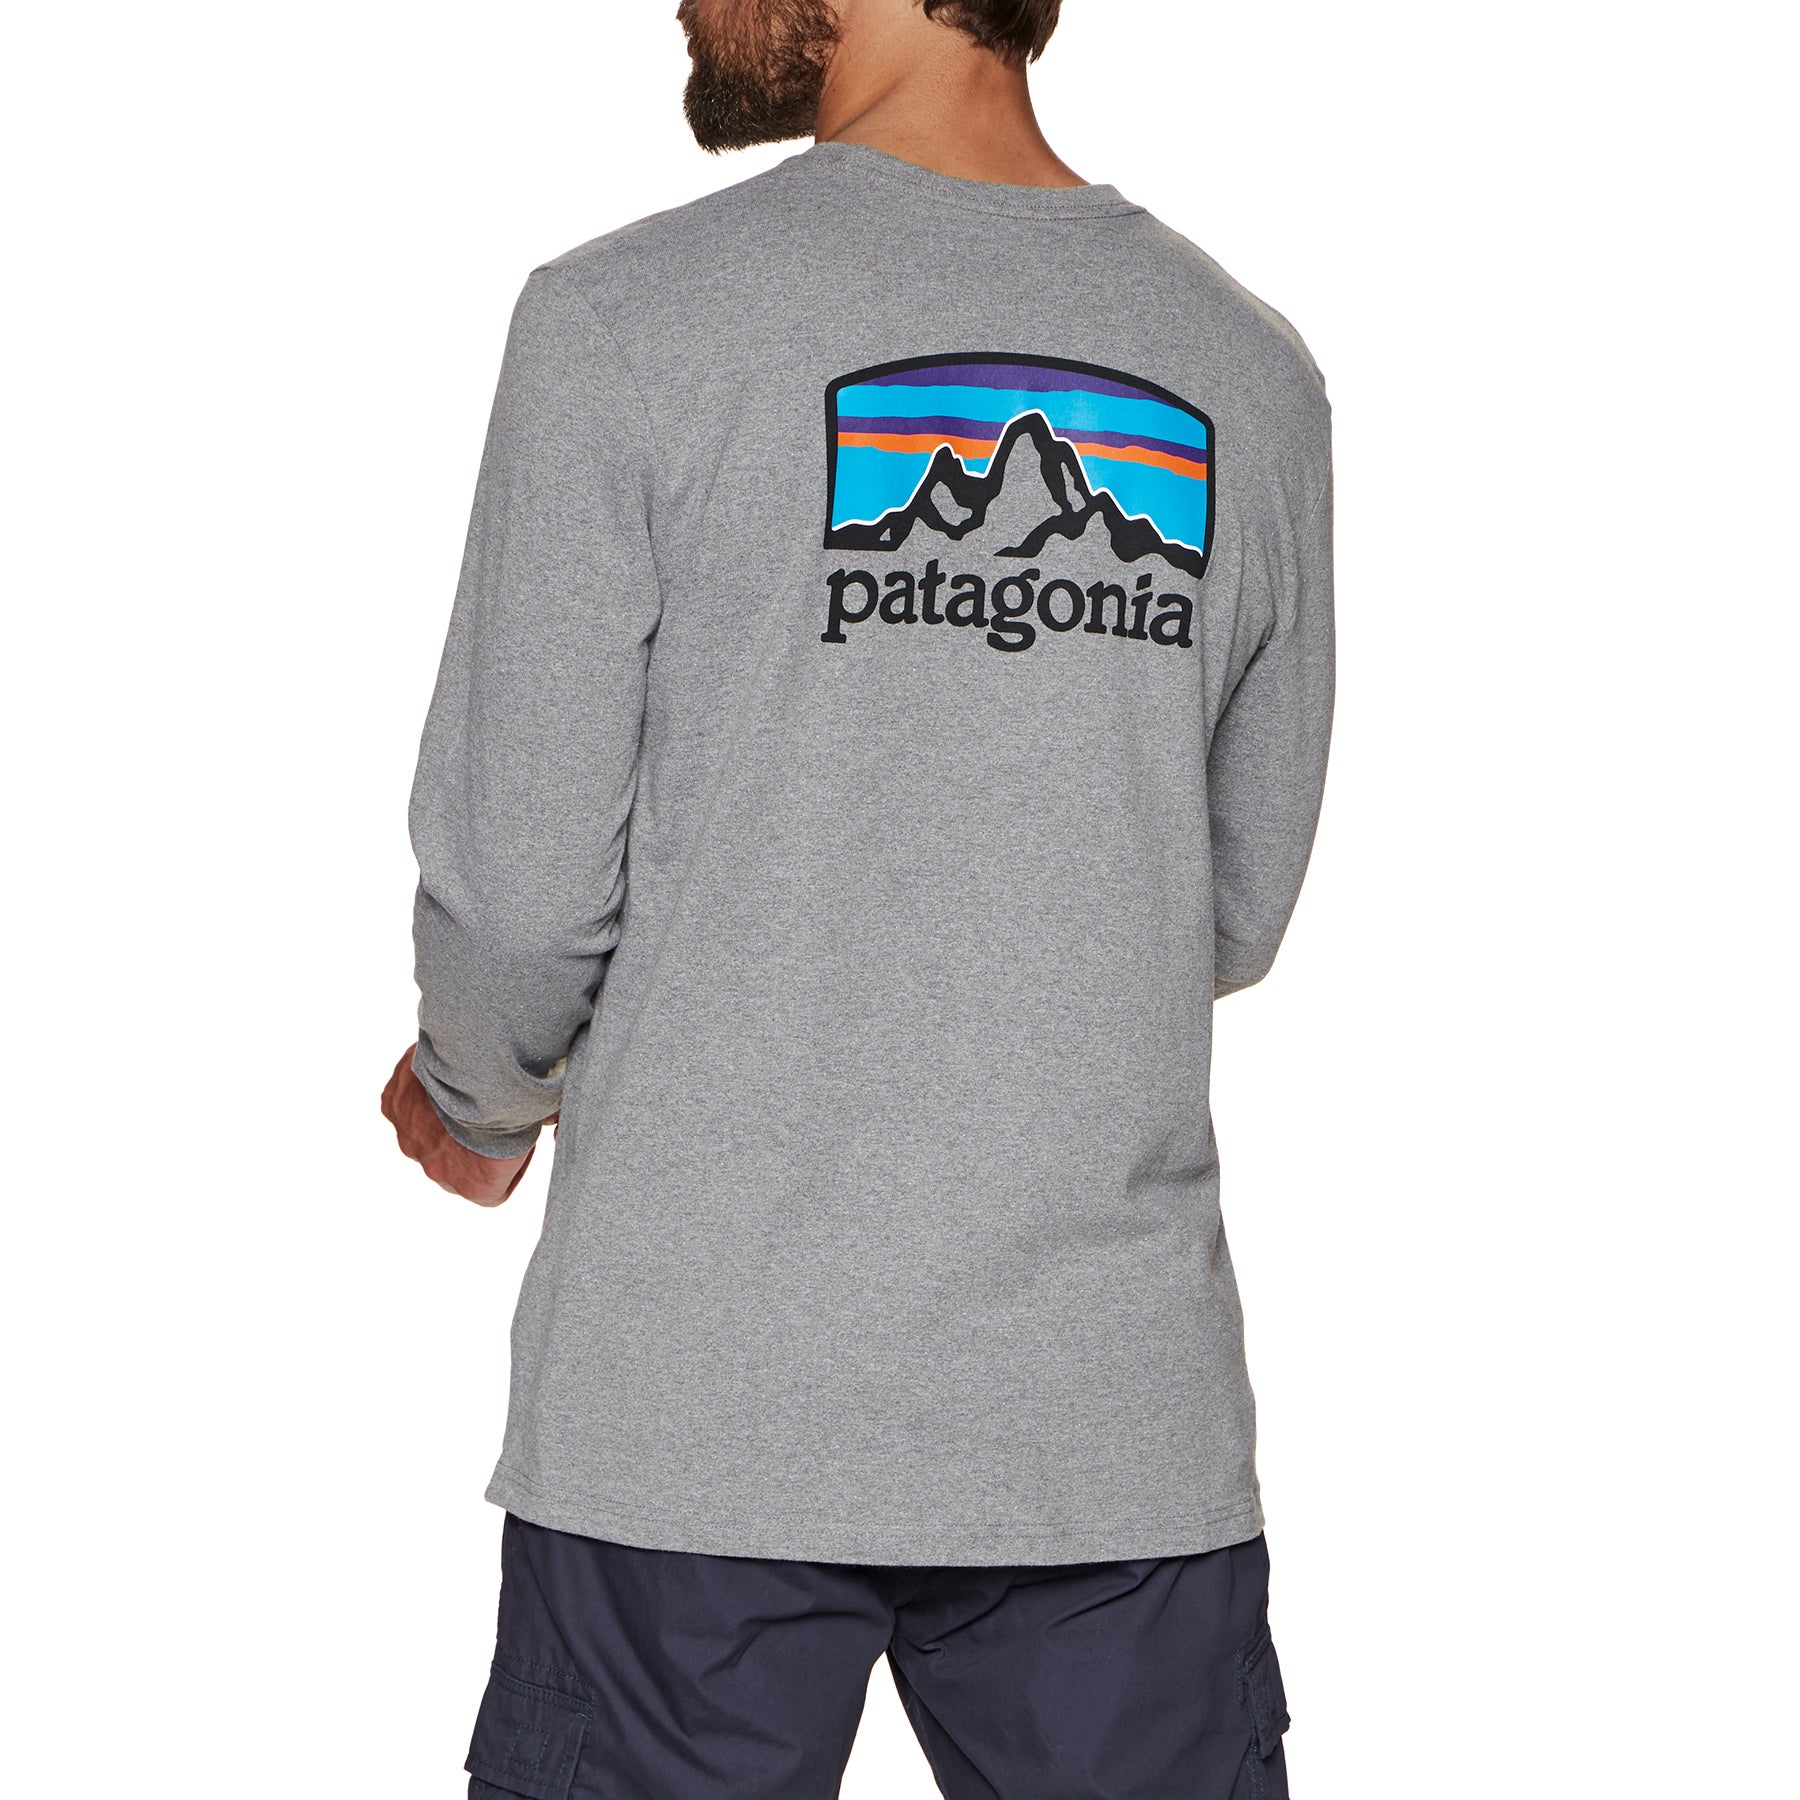 Patagonia Fitz Roy Horizons Responsibilitee Long Sleeve T-Shirt - Gravel Heather